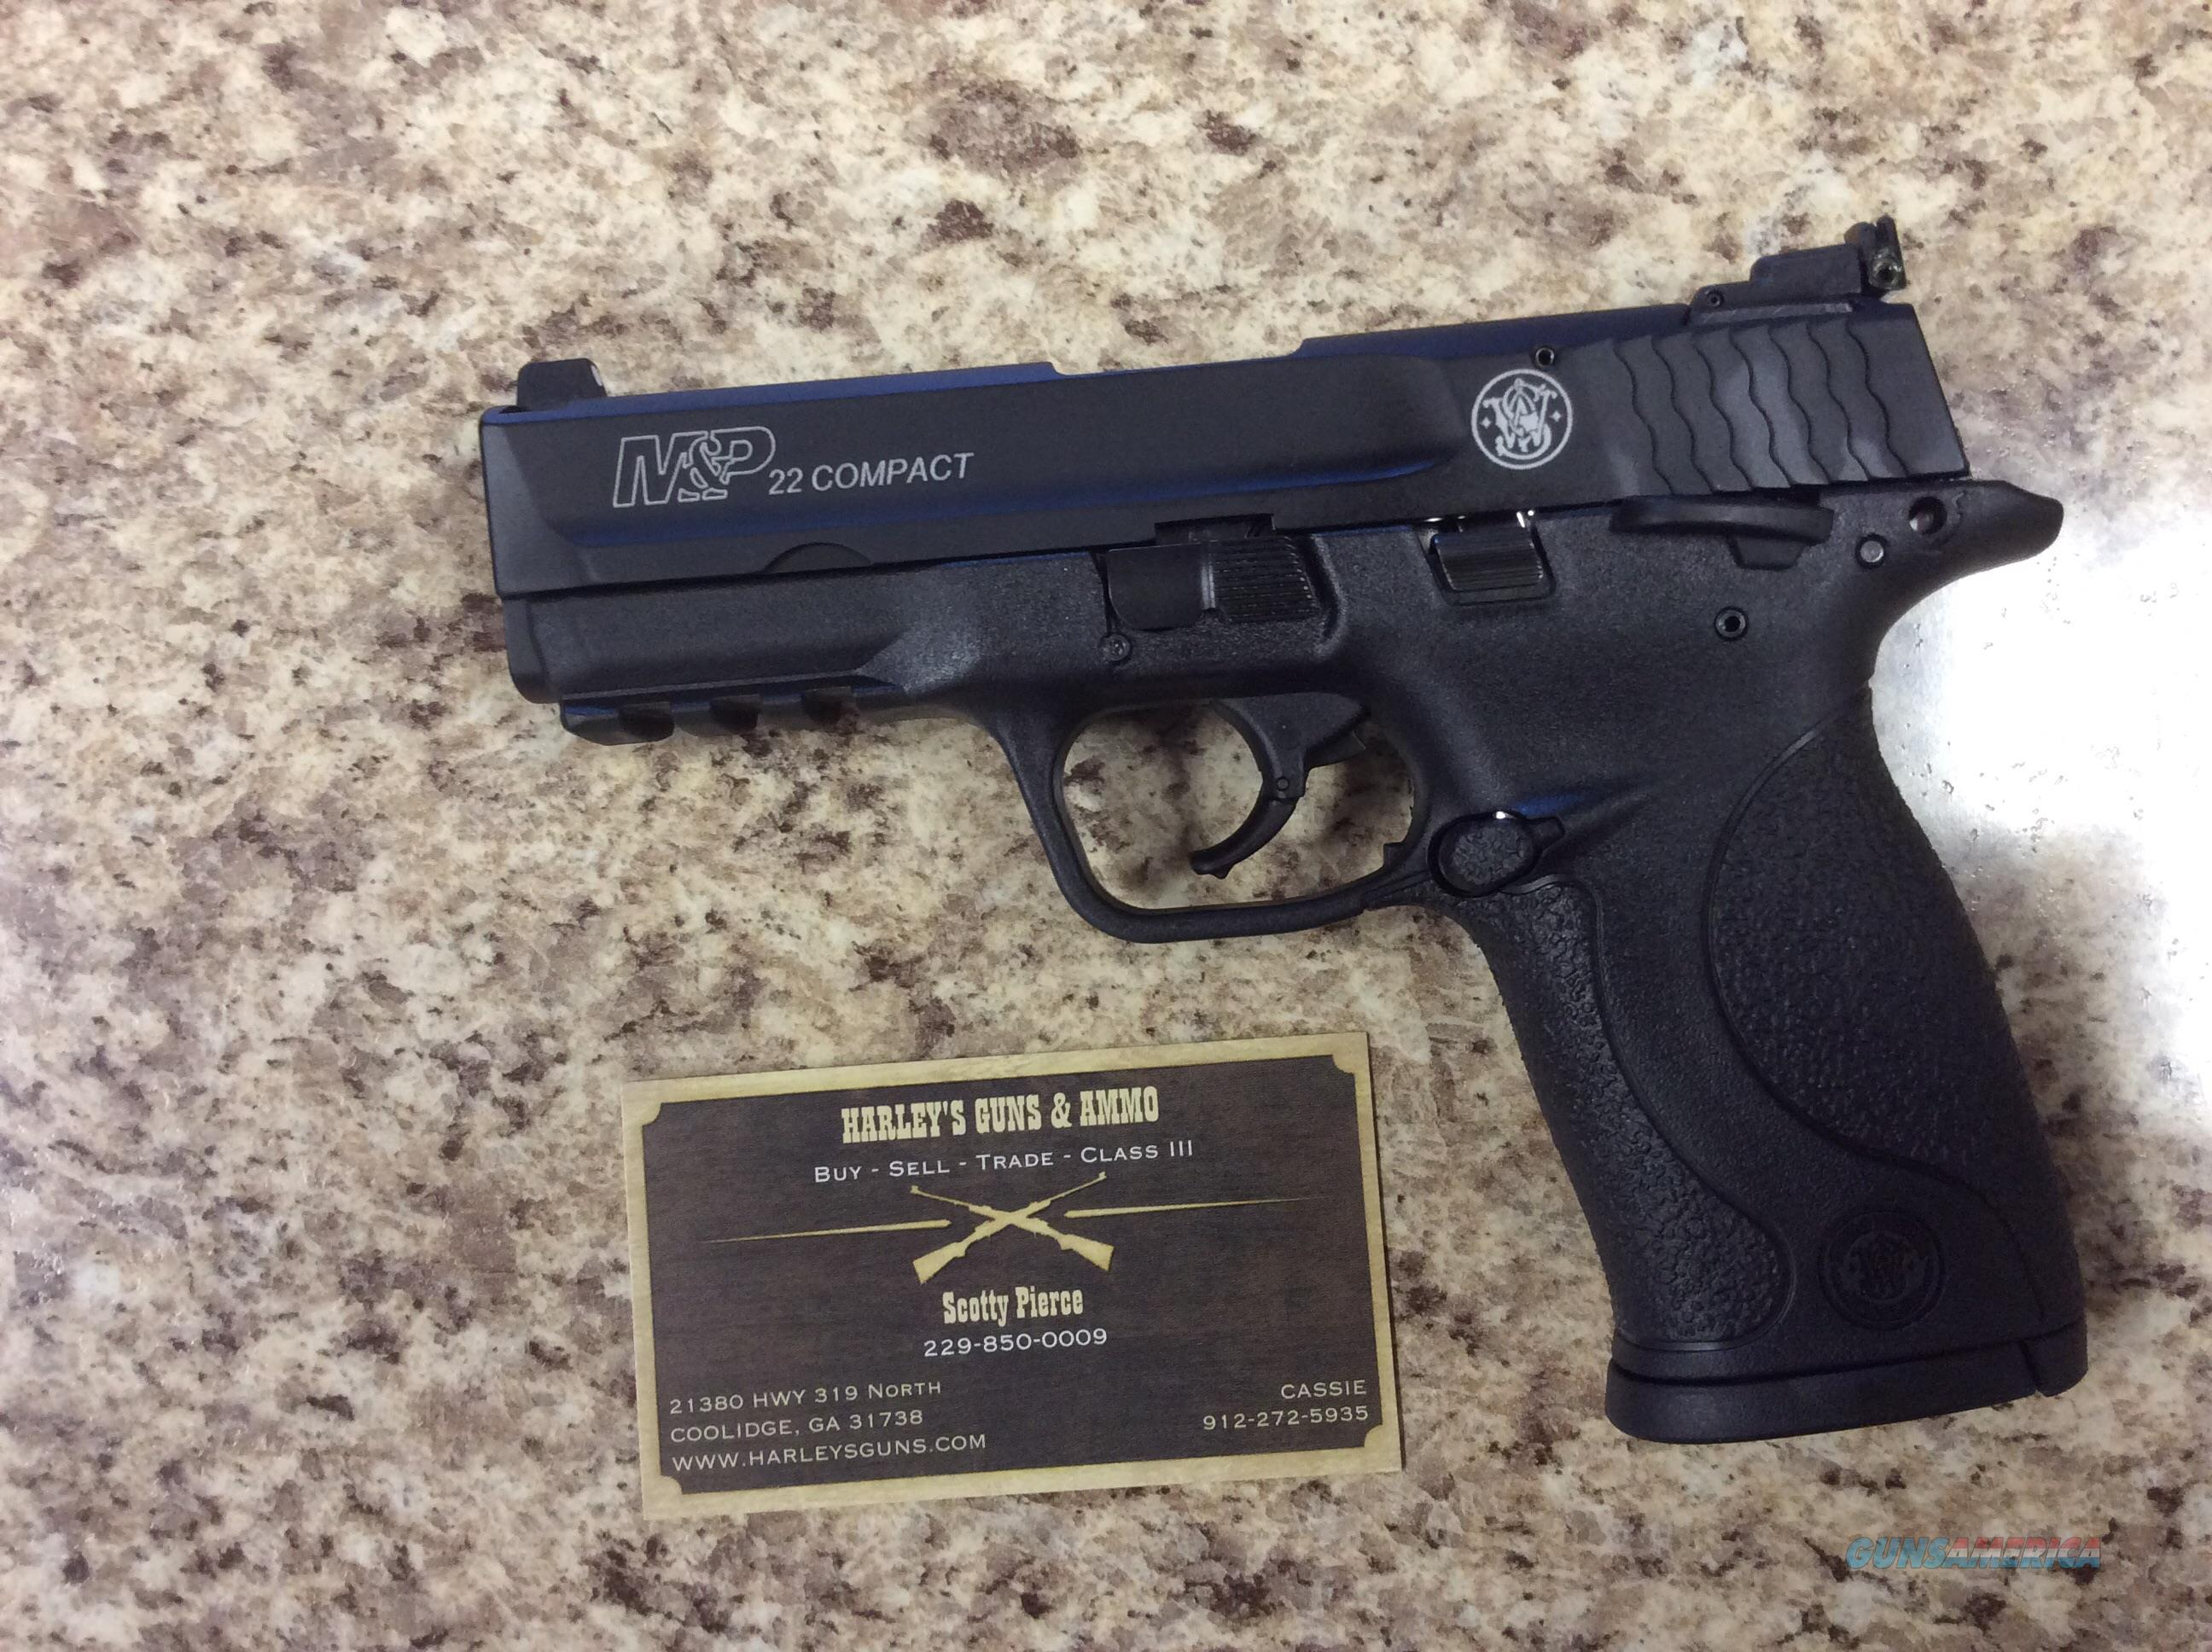 Smith & Wesson  M&P 22 Compact  Guns > Pistols > Smith & Wesson Pistols - Autos > Shield